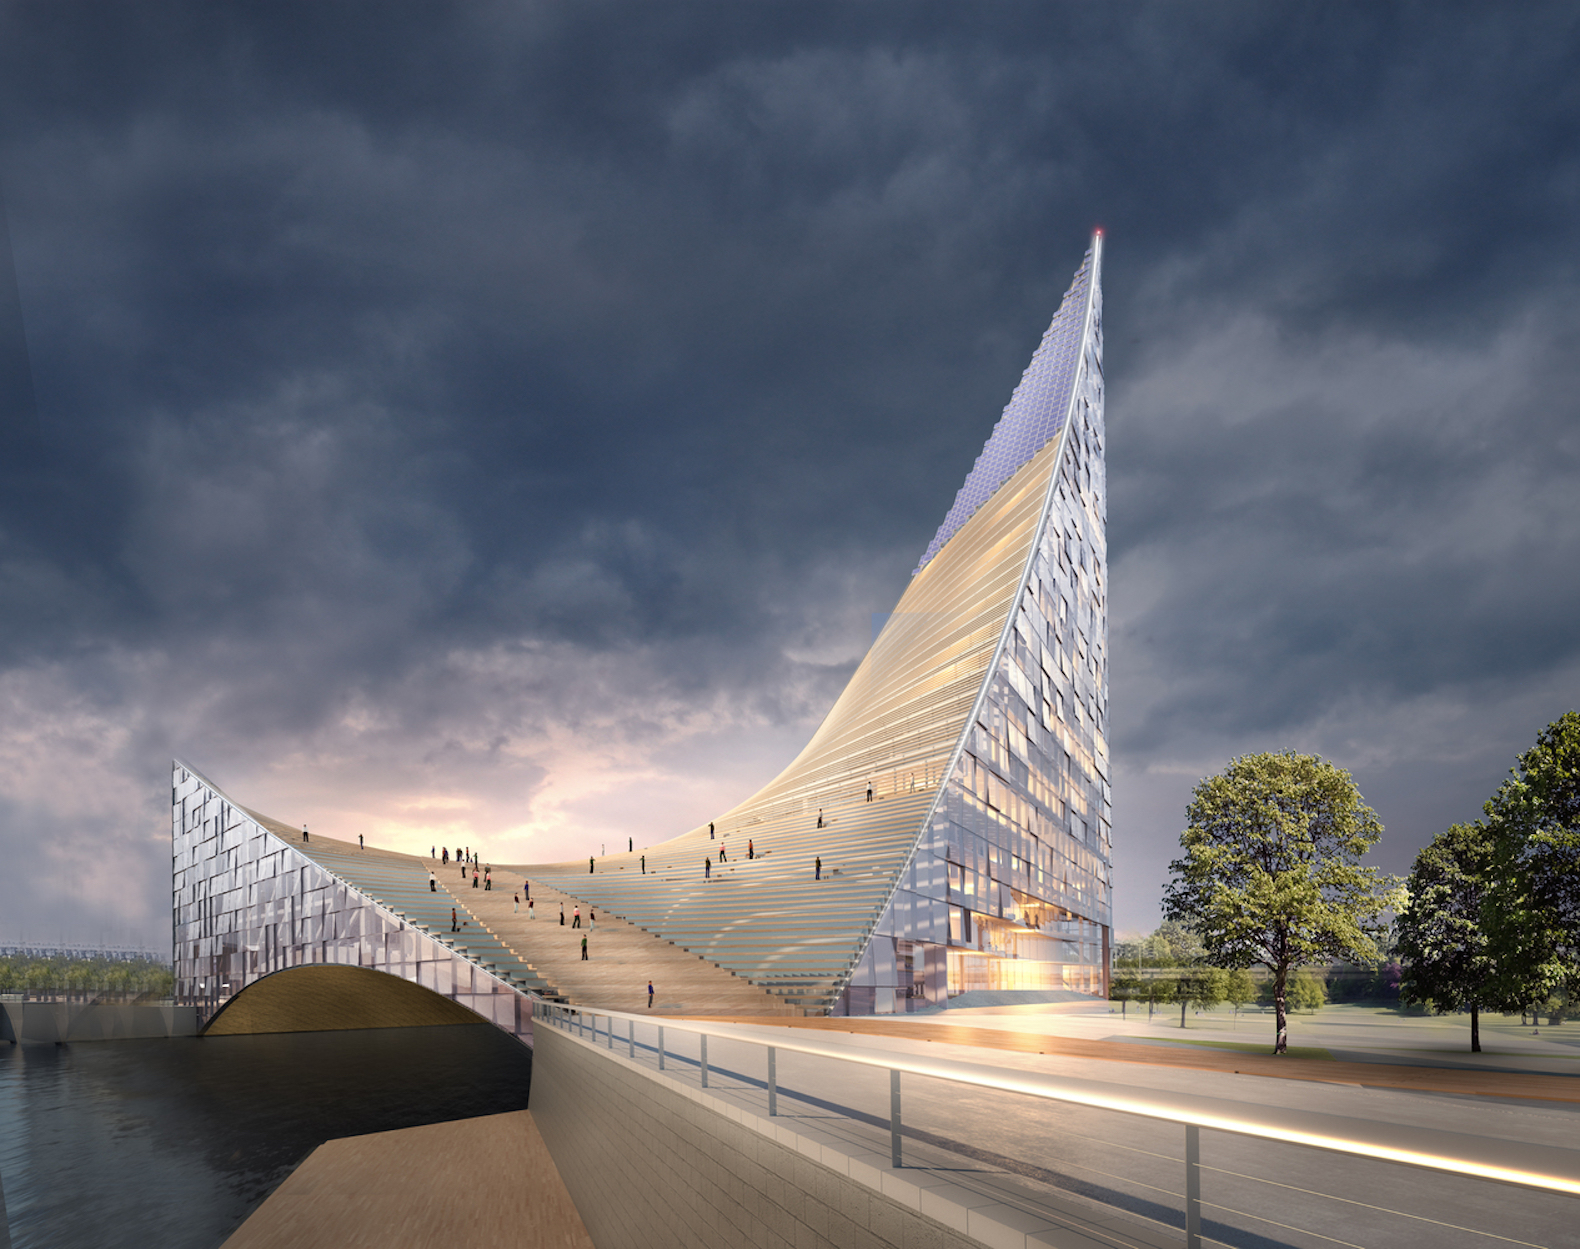 Chelyabinsk's Congress Hall by PIARENA. Archchel-2020 competition, architecture inspired by sails, sail-like architecture, BRICS and SCO conference center in Chelyabinsk, Chelyabinsk new architecture, Chelyabinsk congress hall